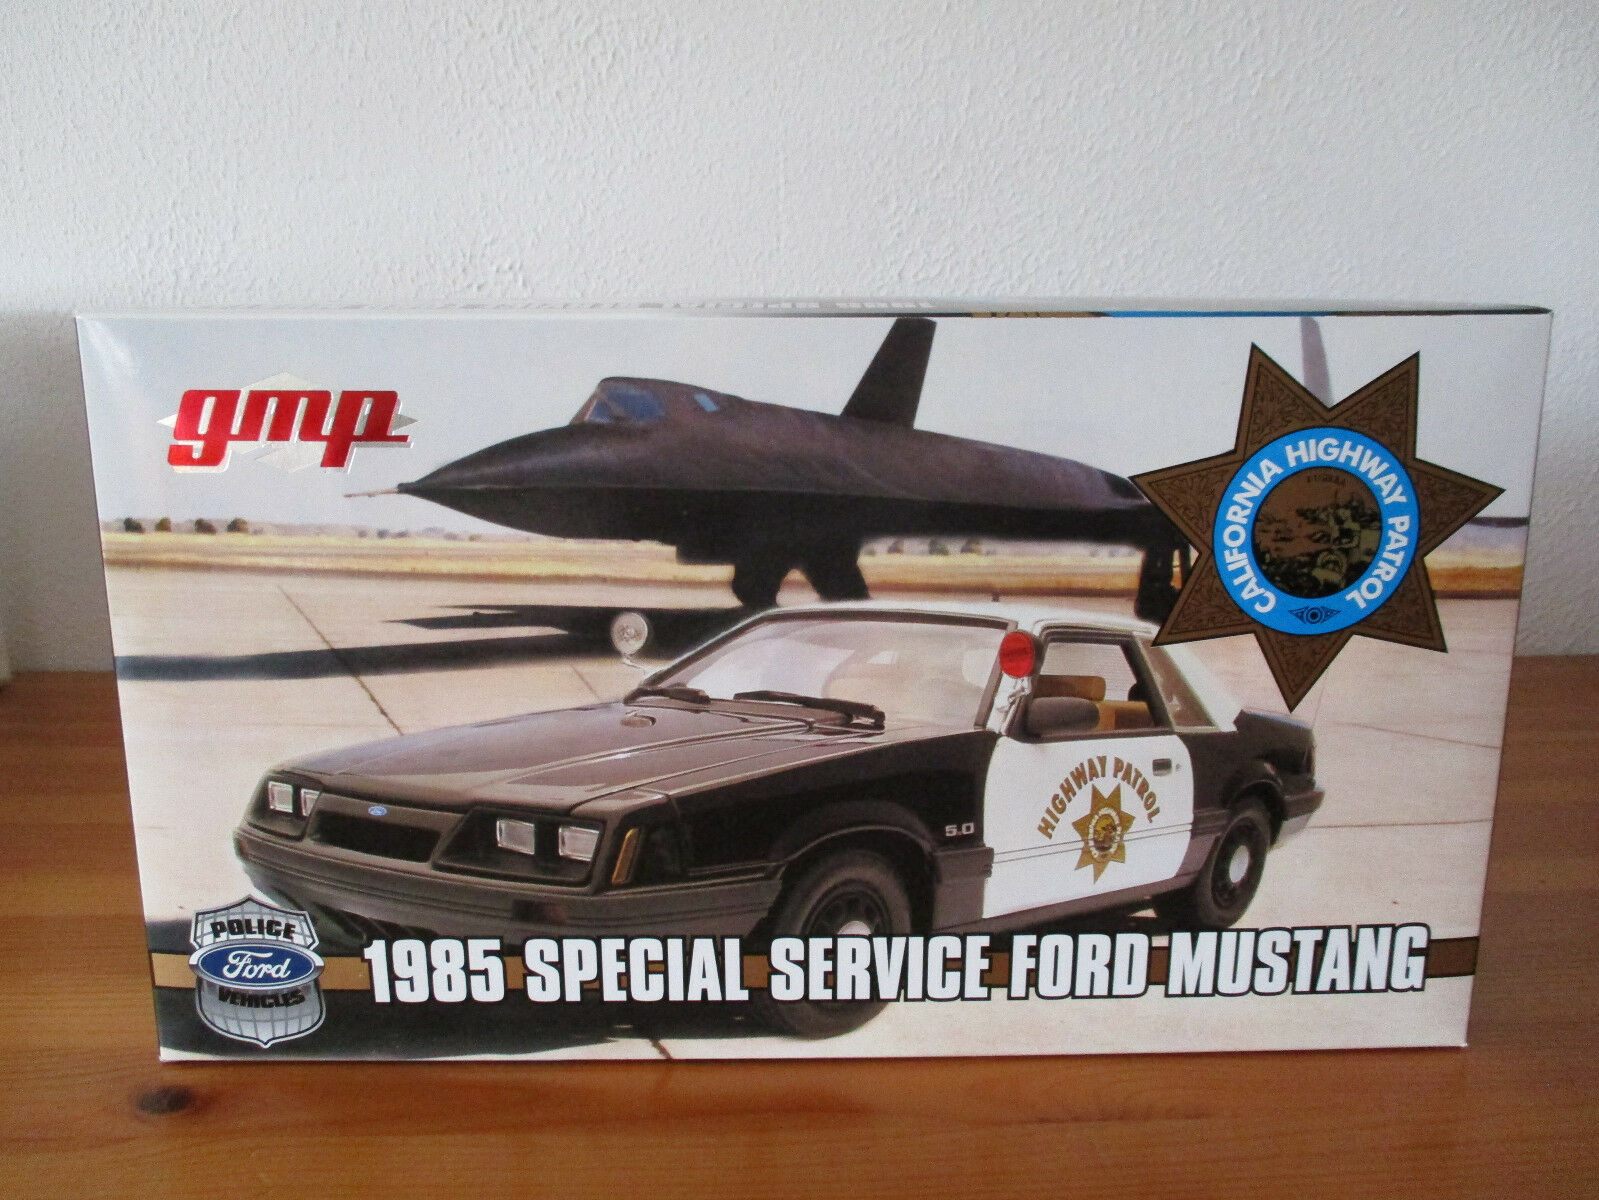 (GOR) 1 18 GMP Ford Mustang California Highway Patrouille Sp 65533;65533; Social Service